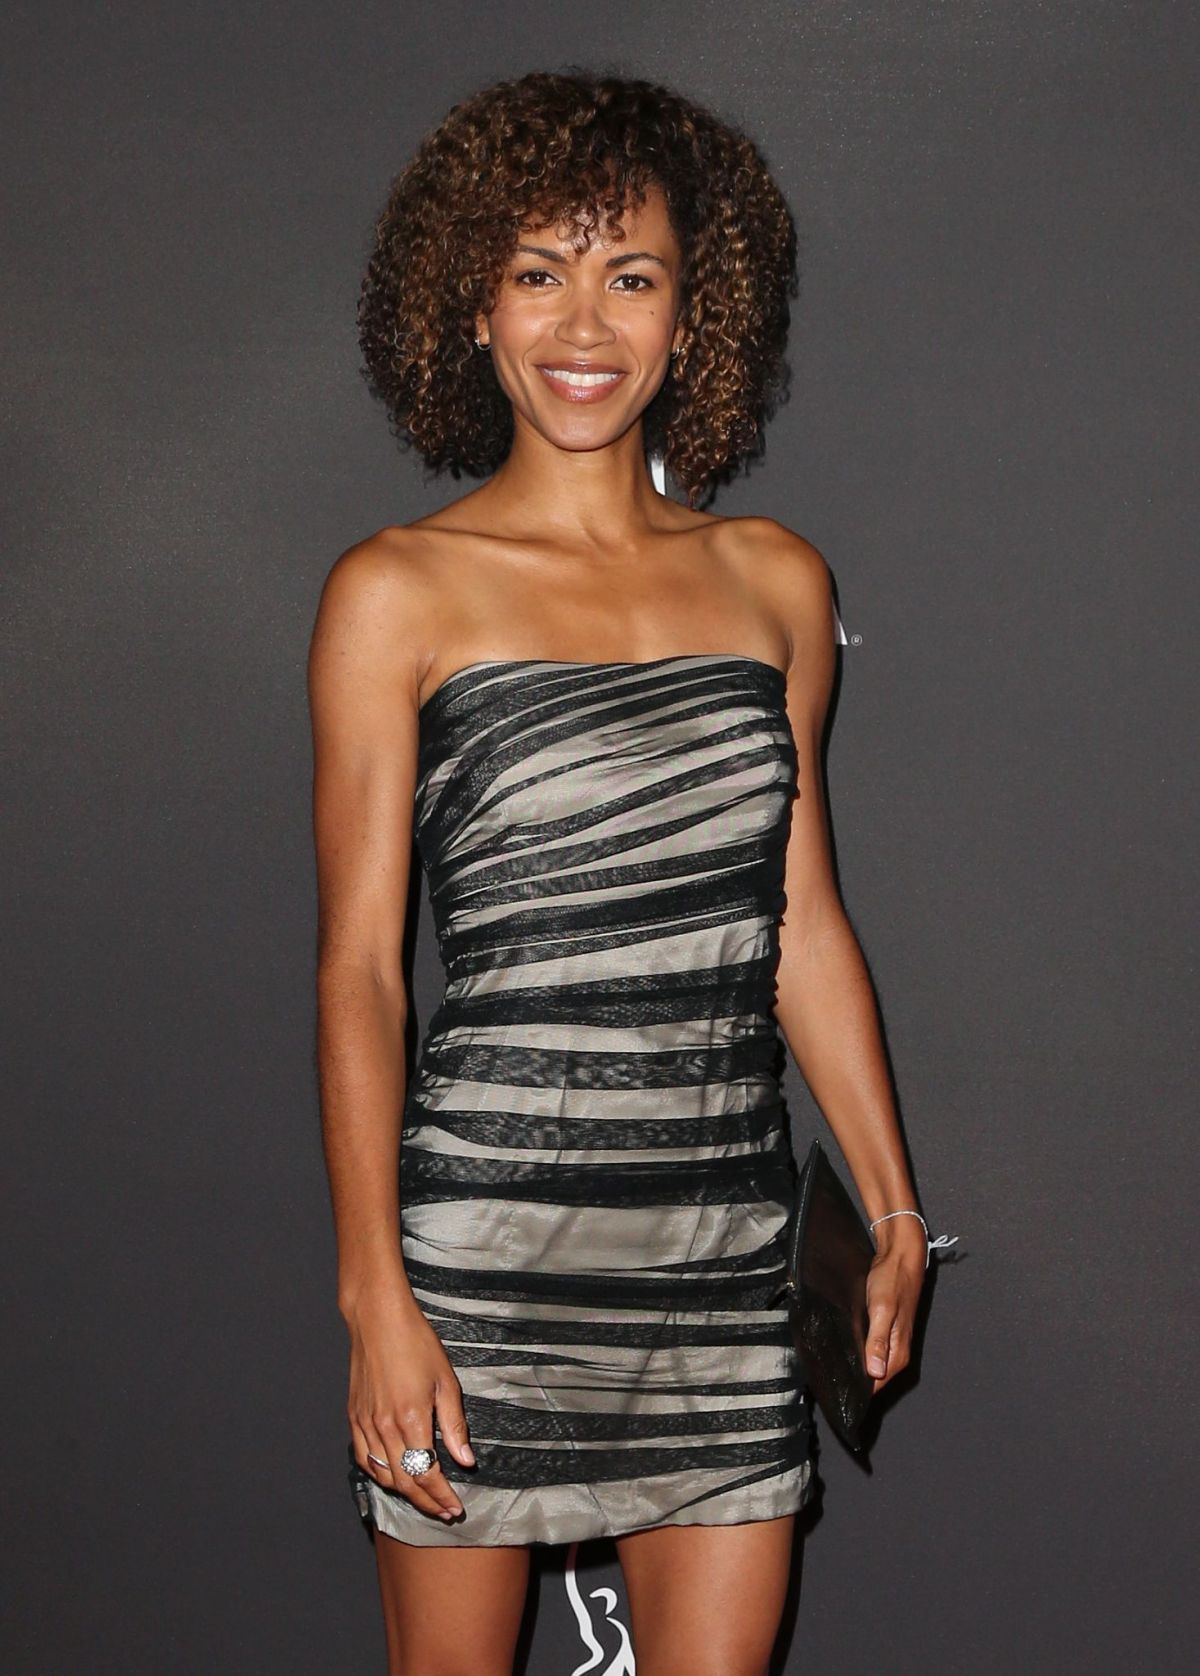 ERICA LUTTRELL at Dynamic & Diverse Emmy Reception in Los Angeles 09/12/2017